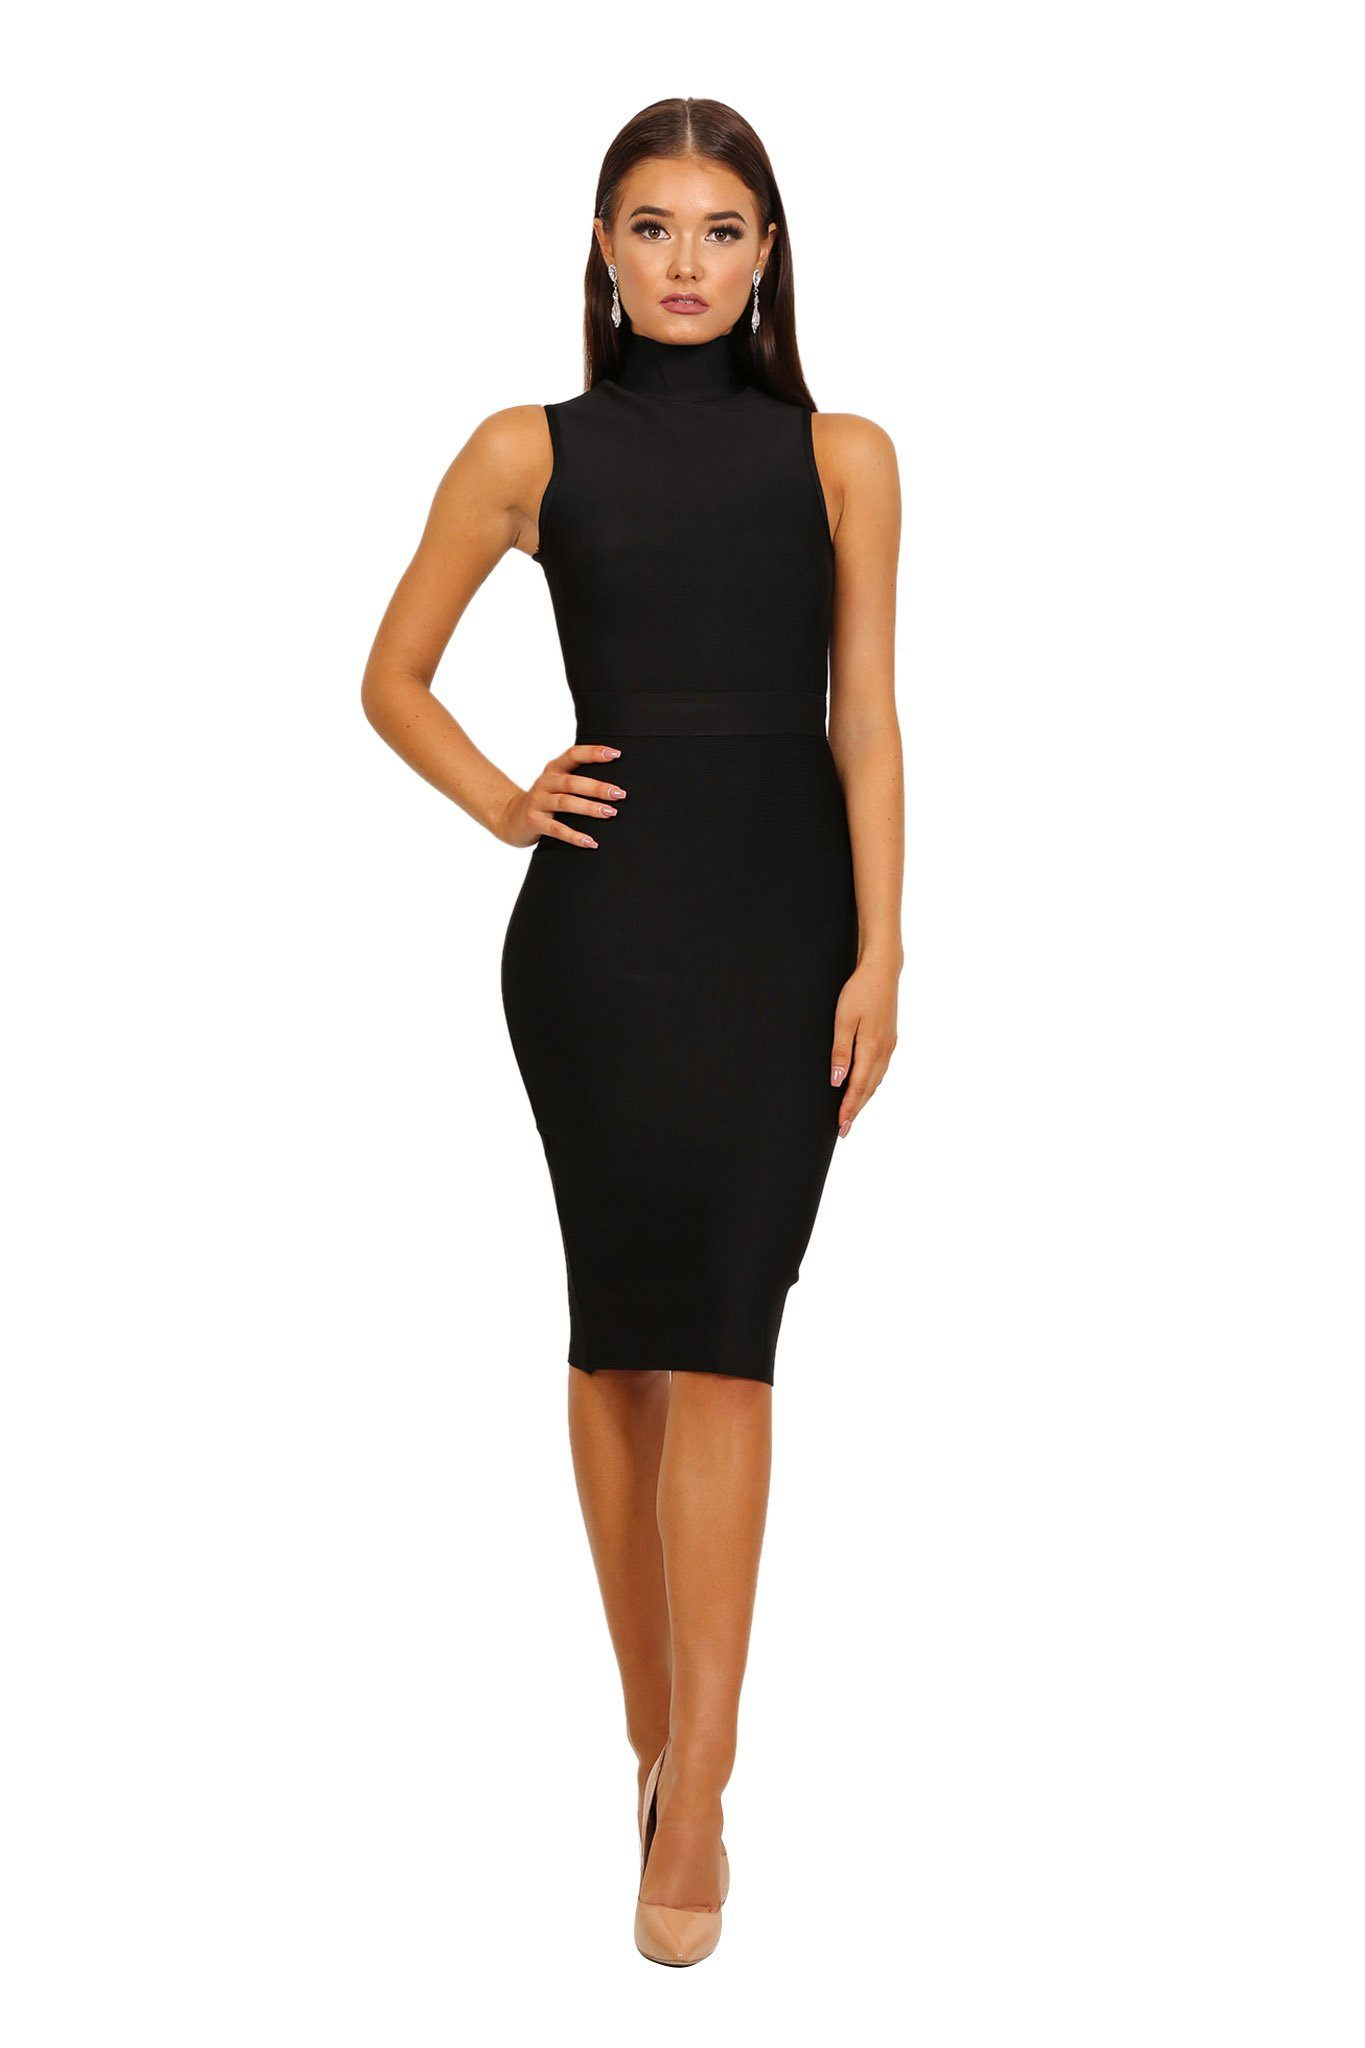 Black high neck sleeveless tight fitted knee length bandage dress